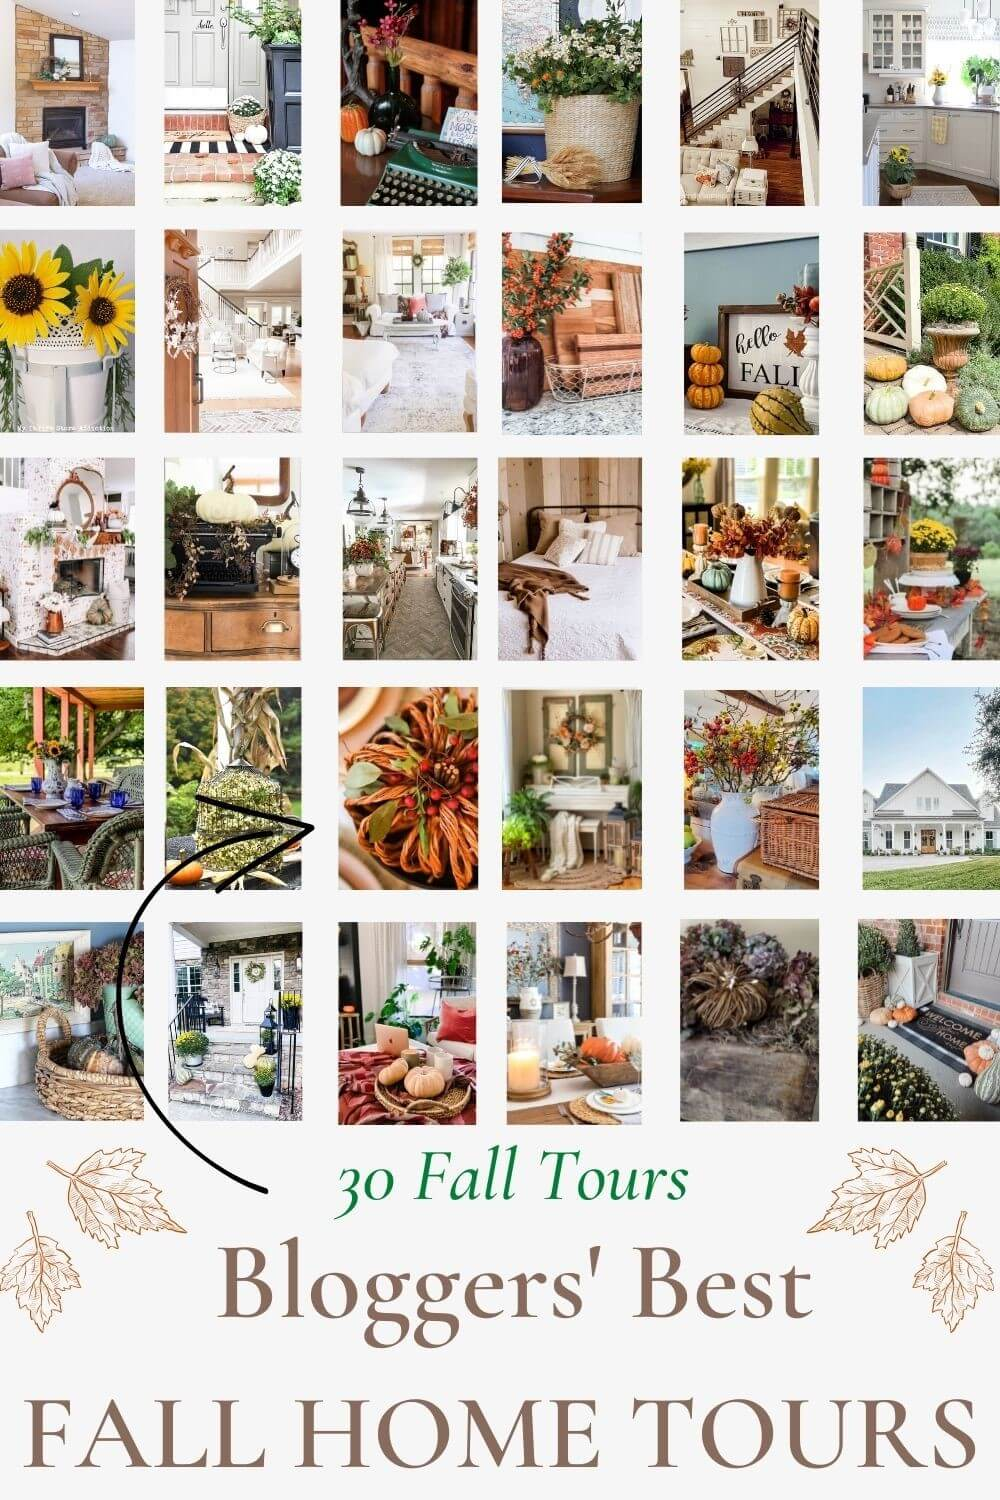 Bloggers Best Home Tours for Fall!